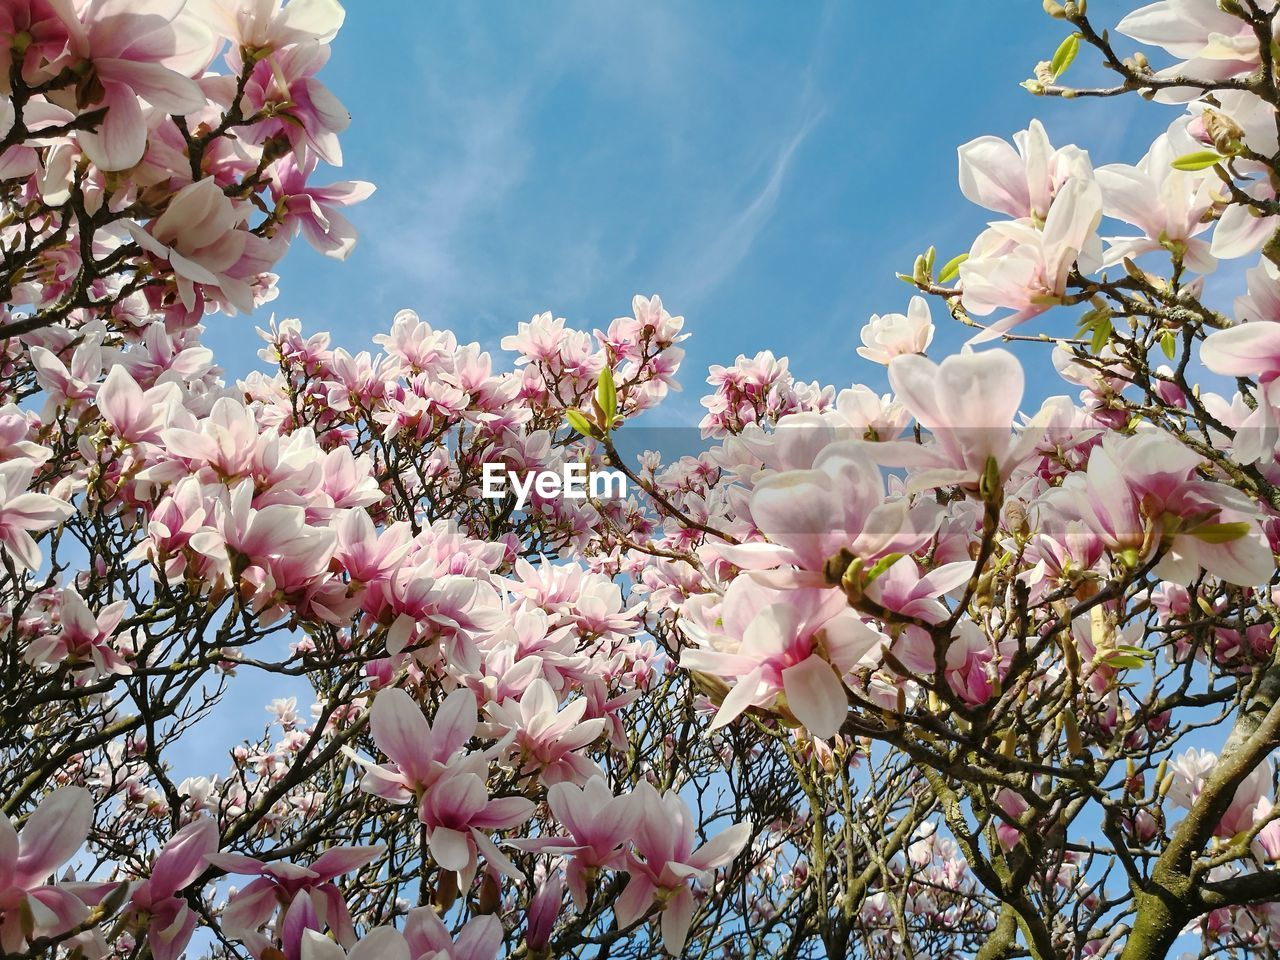 plant, flower, flowering plant, freshness, tree, fragility, pink color, growth, branch, vulnerability, beauty in nature, blossom, low angle view, springtime, nature, petal, close-up, cherry blossom, day, magnolia, no people, outdoors, cherry tree, flower head, spring